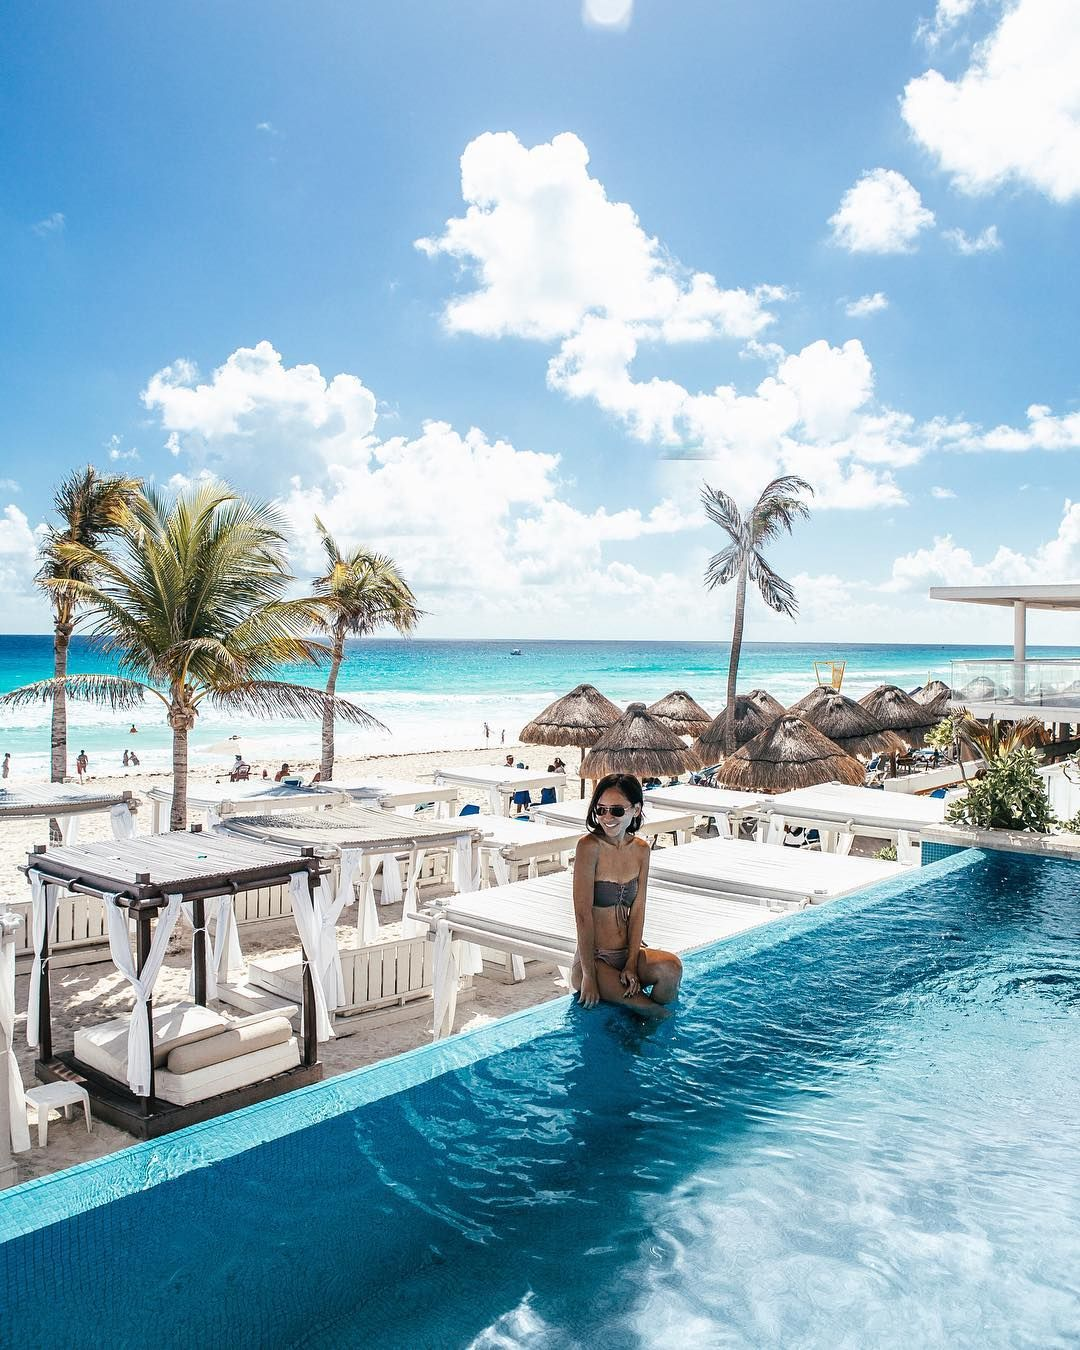 Panama Vacations All Inclusive Packages: Panama Jack Resorts Cancun